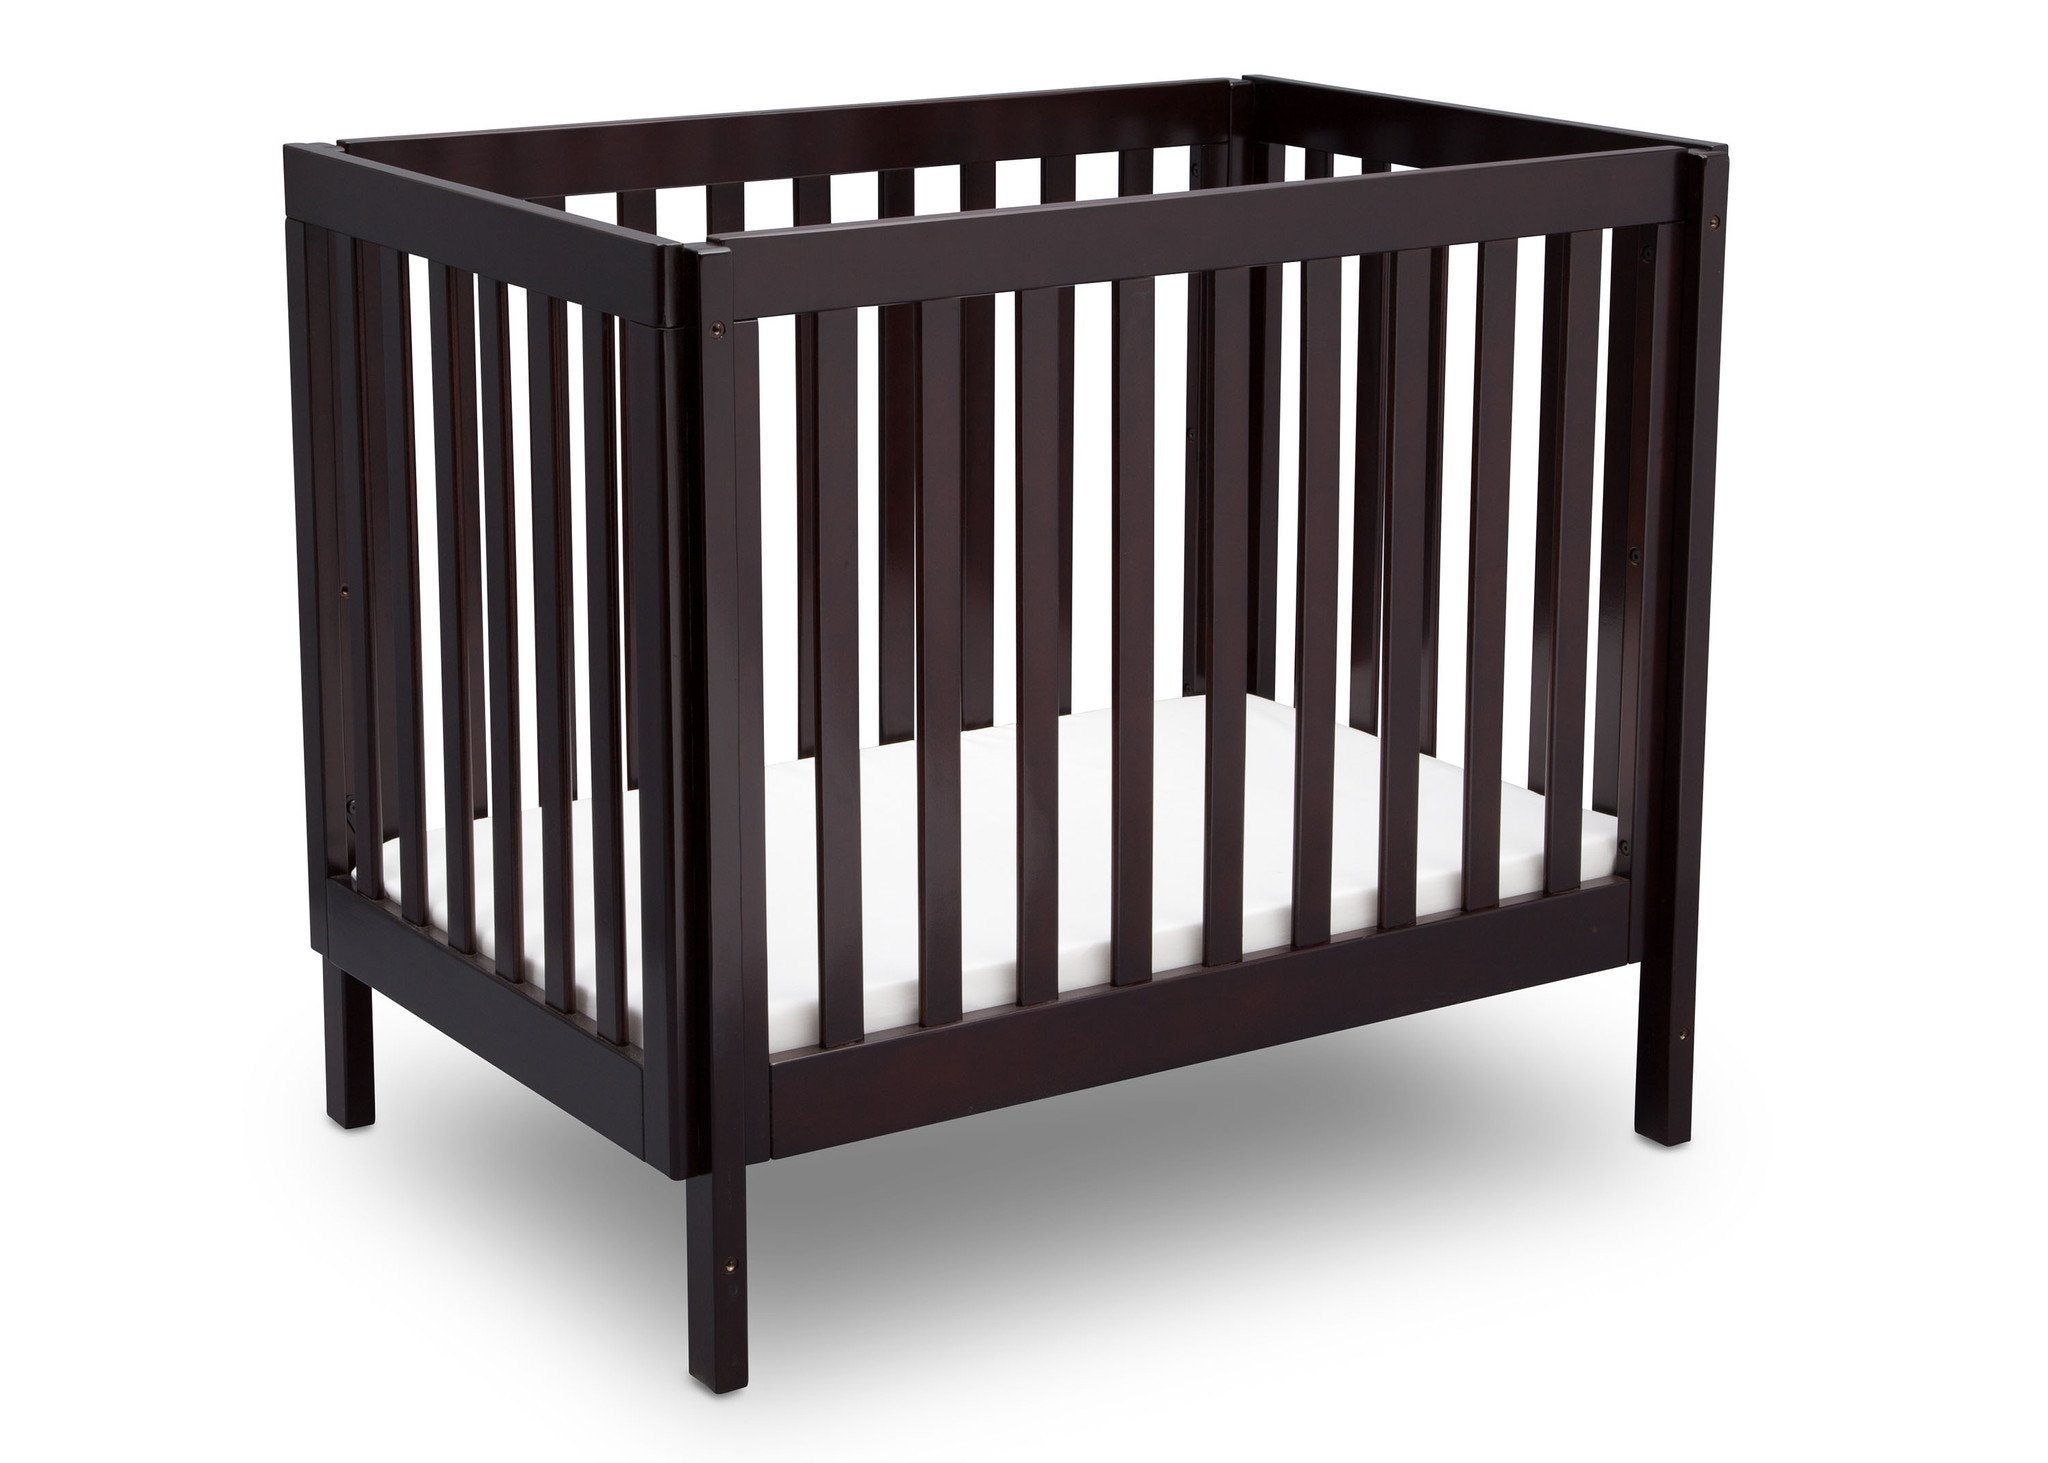 value s best bedding portrait sets grey crib all pink pictures photo the jcpenneybaby about of jcpenney bedroom package and girl baby cribs studios taking plus